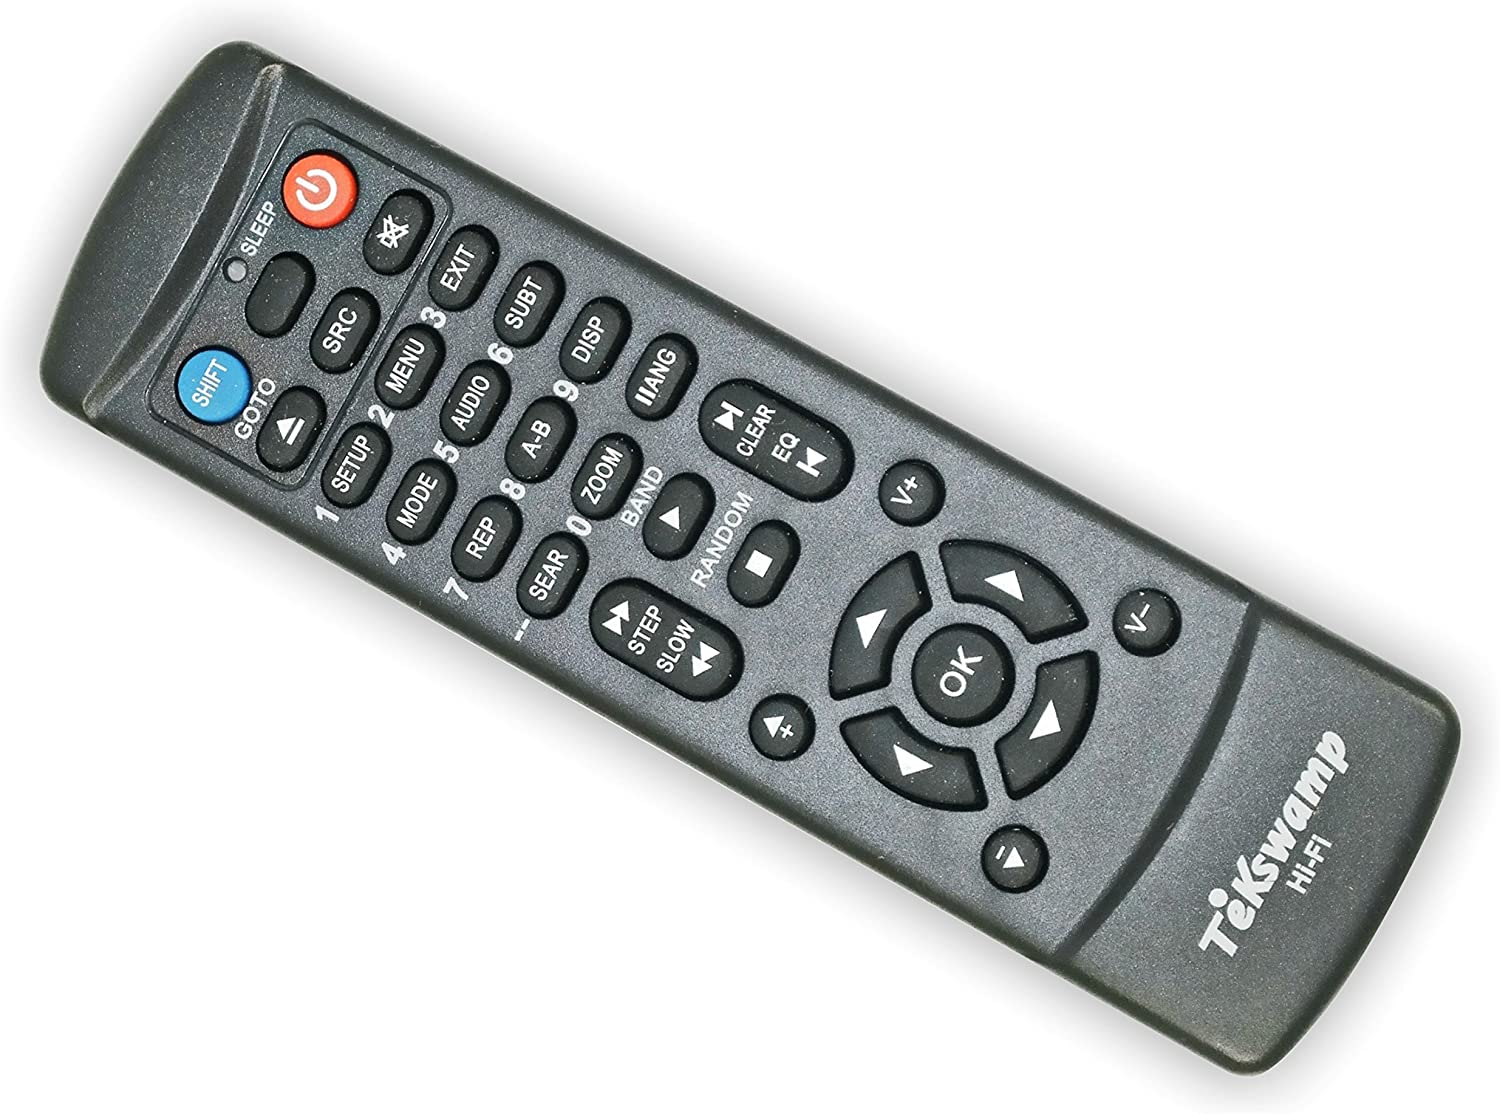 Remote Control for Sony Playstation 2 by Tekswamp